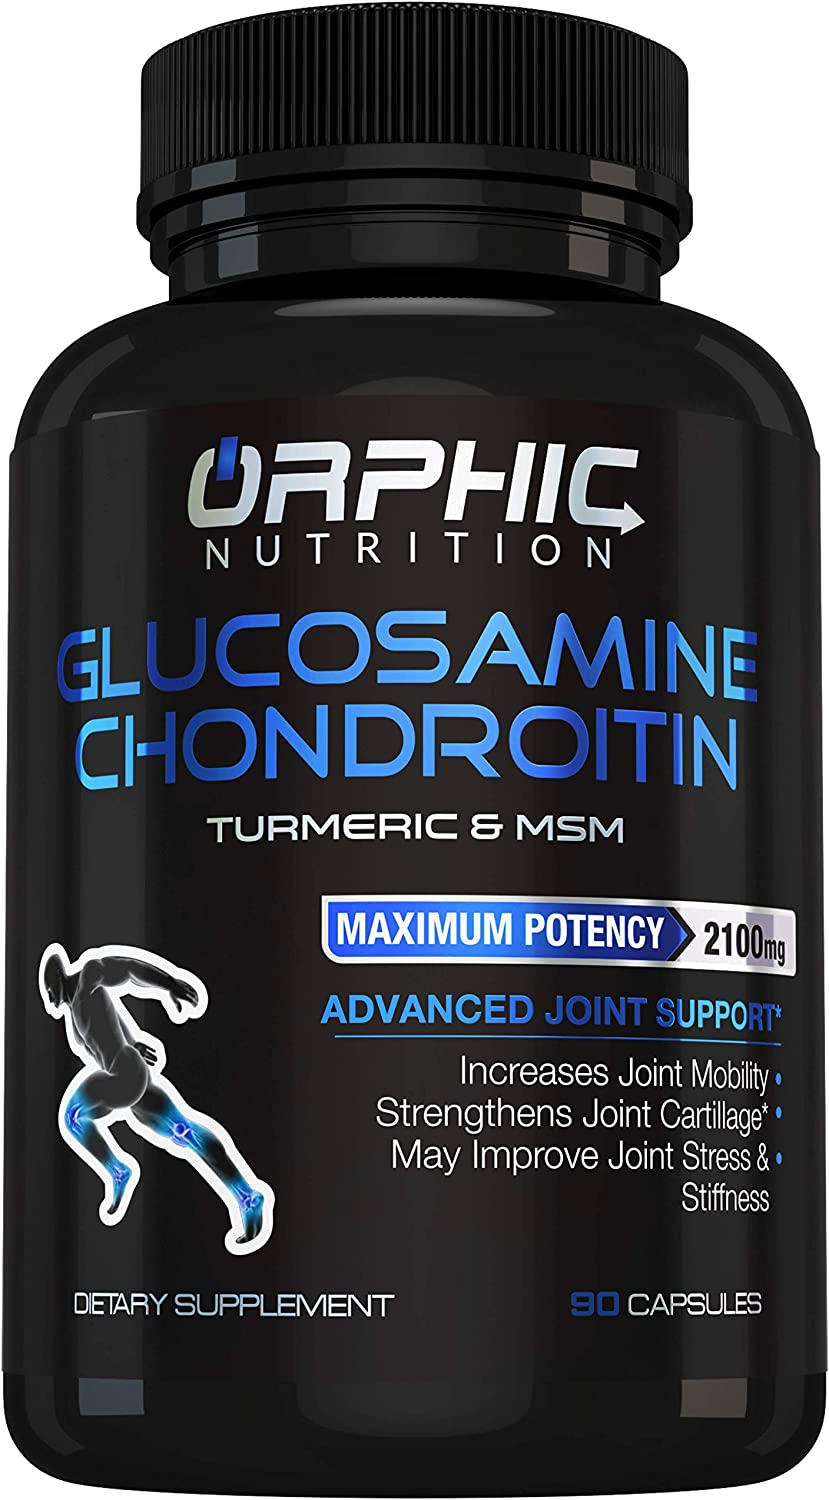 Glucosamine Chondroitin - Turmeric & MSM 2100MG Anti Inflammatory Joint Support Supplements for Pain Relief Joint Cartilage Health - Stiffness & Arthritis Relief for Men, Women - Increases Mobility